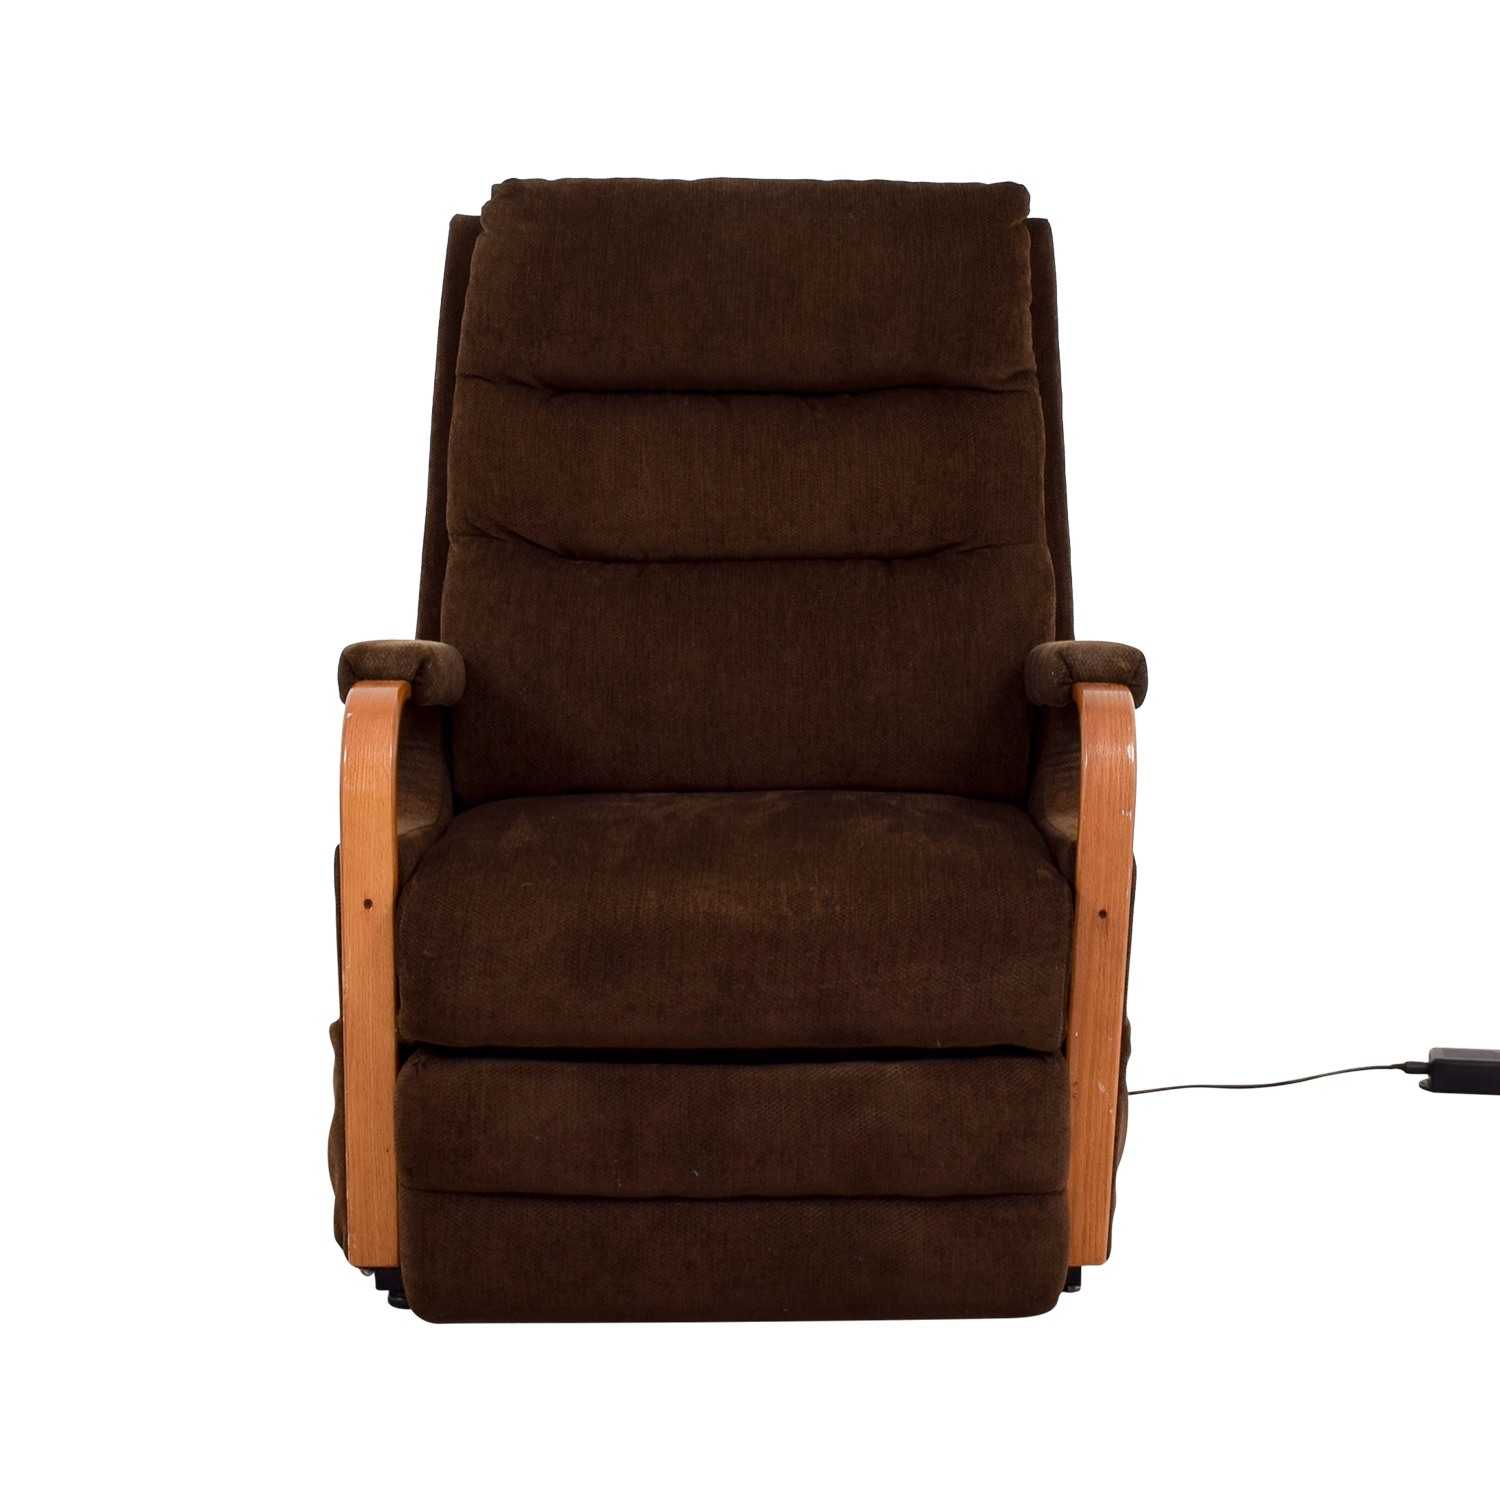 used recliner chairs teardrop swing chair recliners for sale